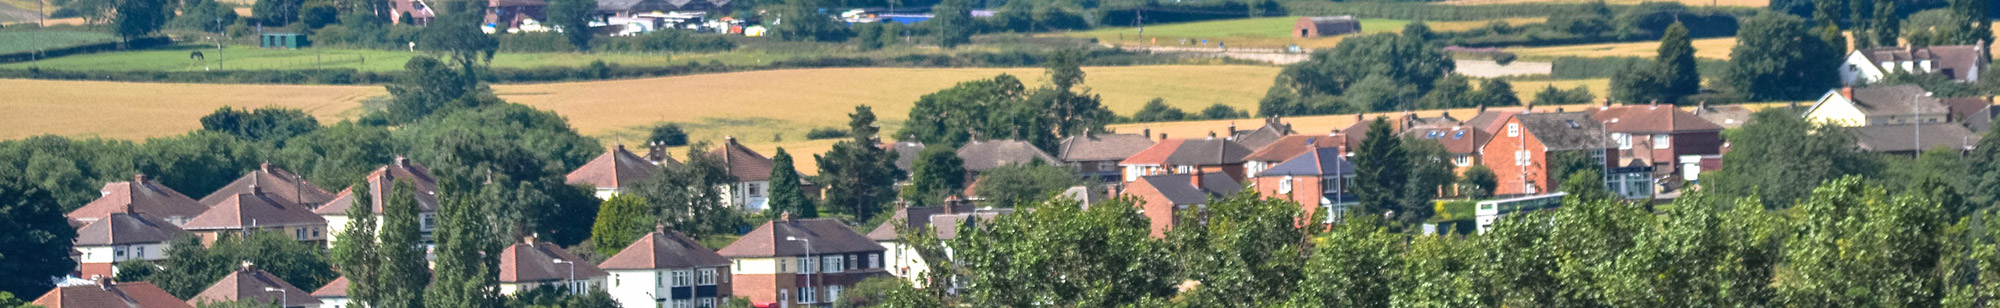 a panoramic image of Rotherham